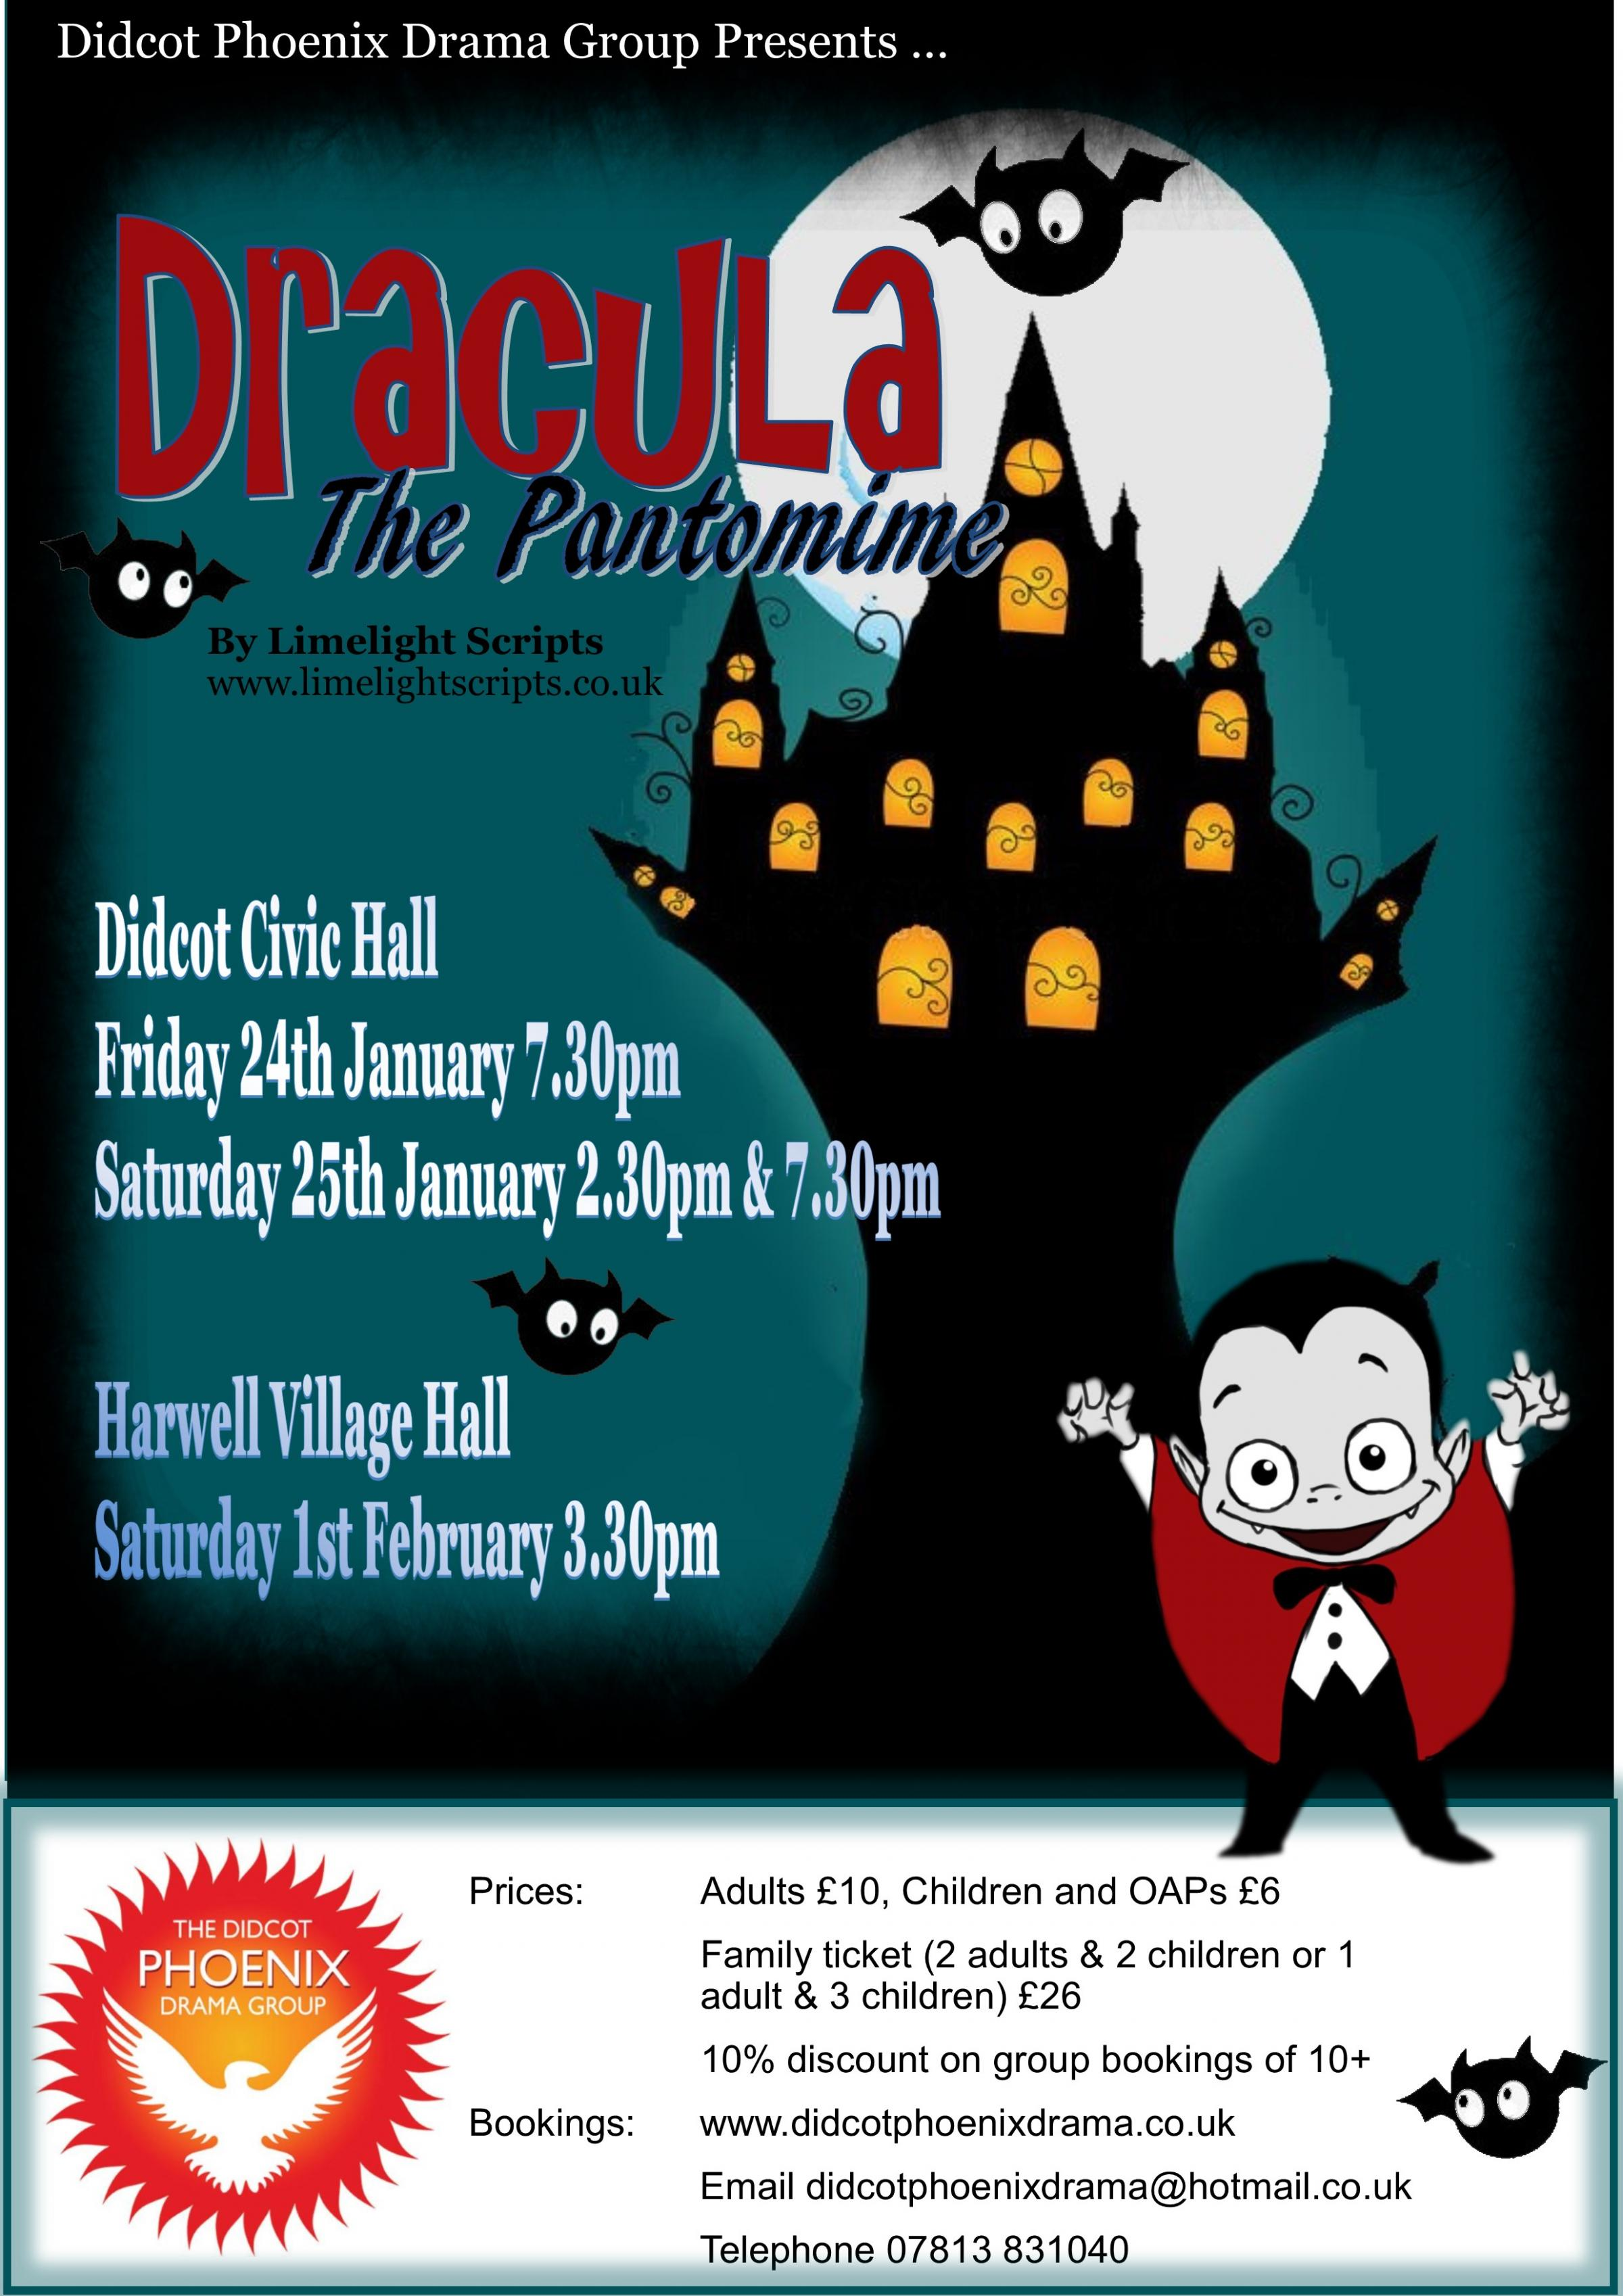 Dracula - The Pantomime